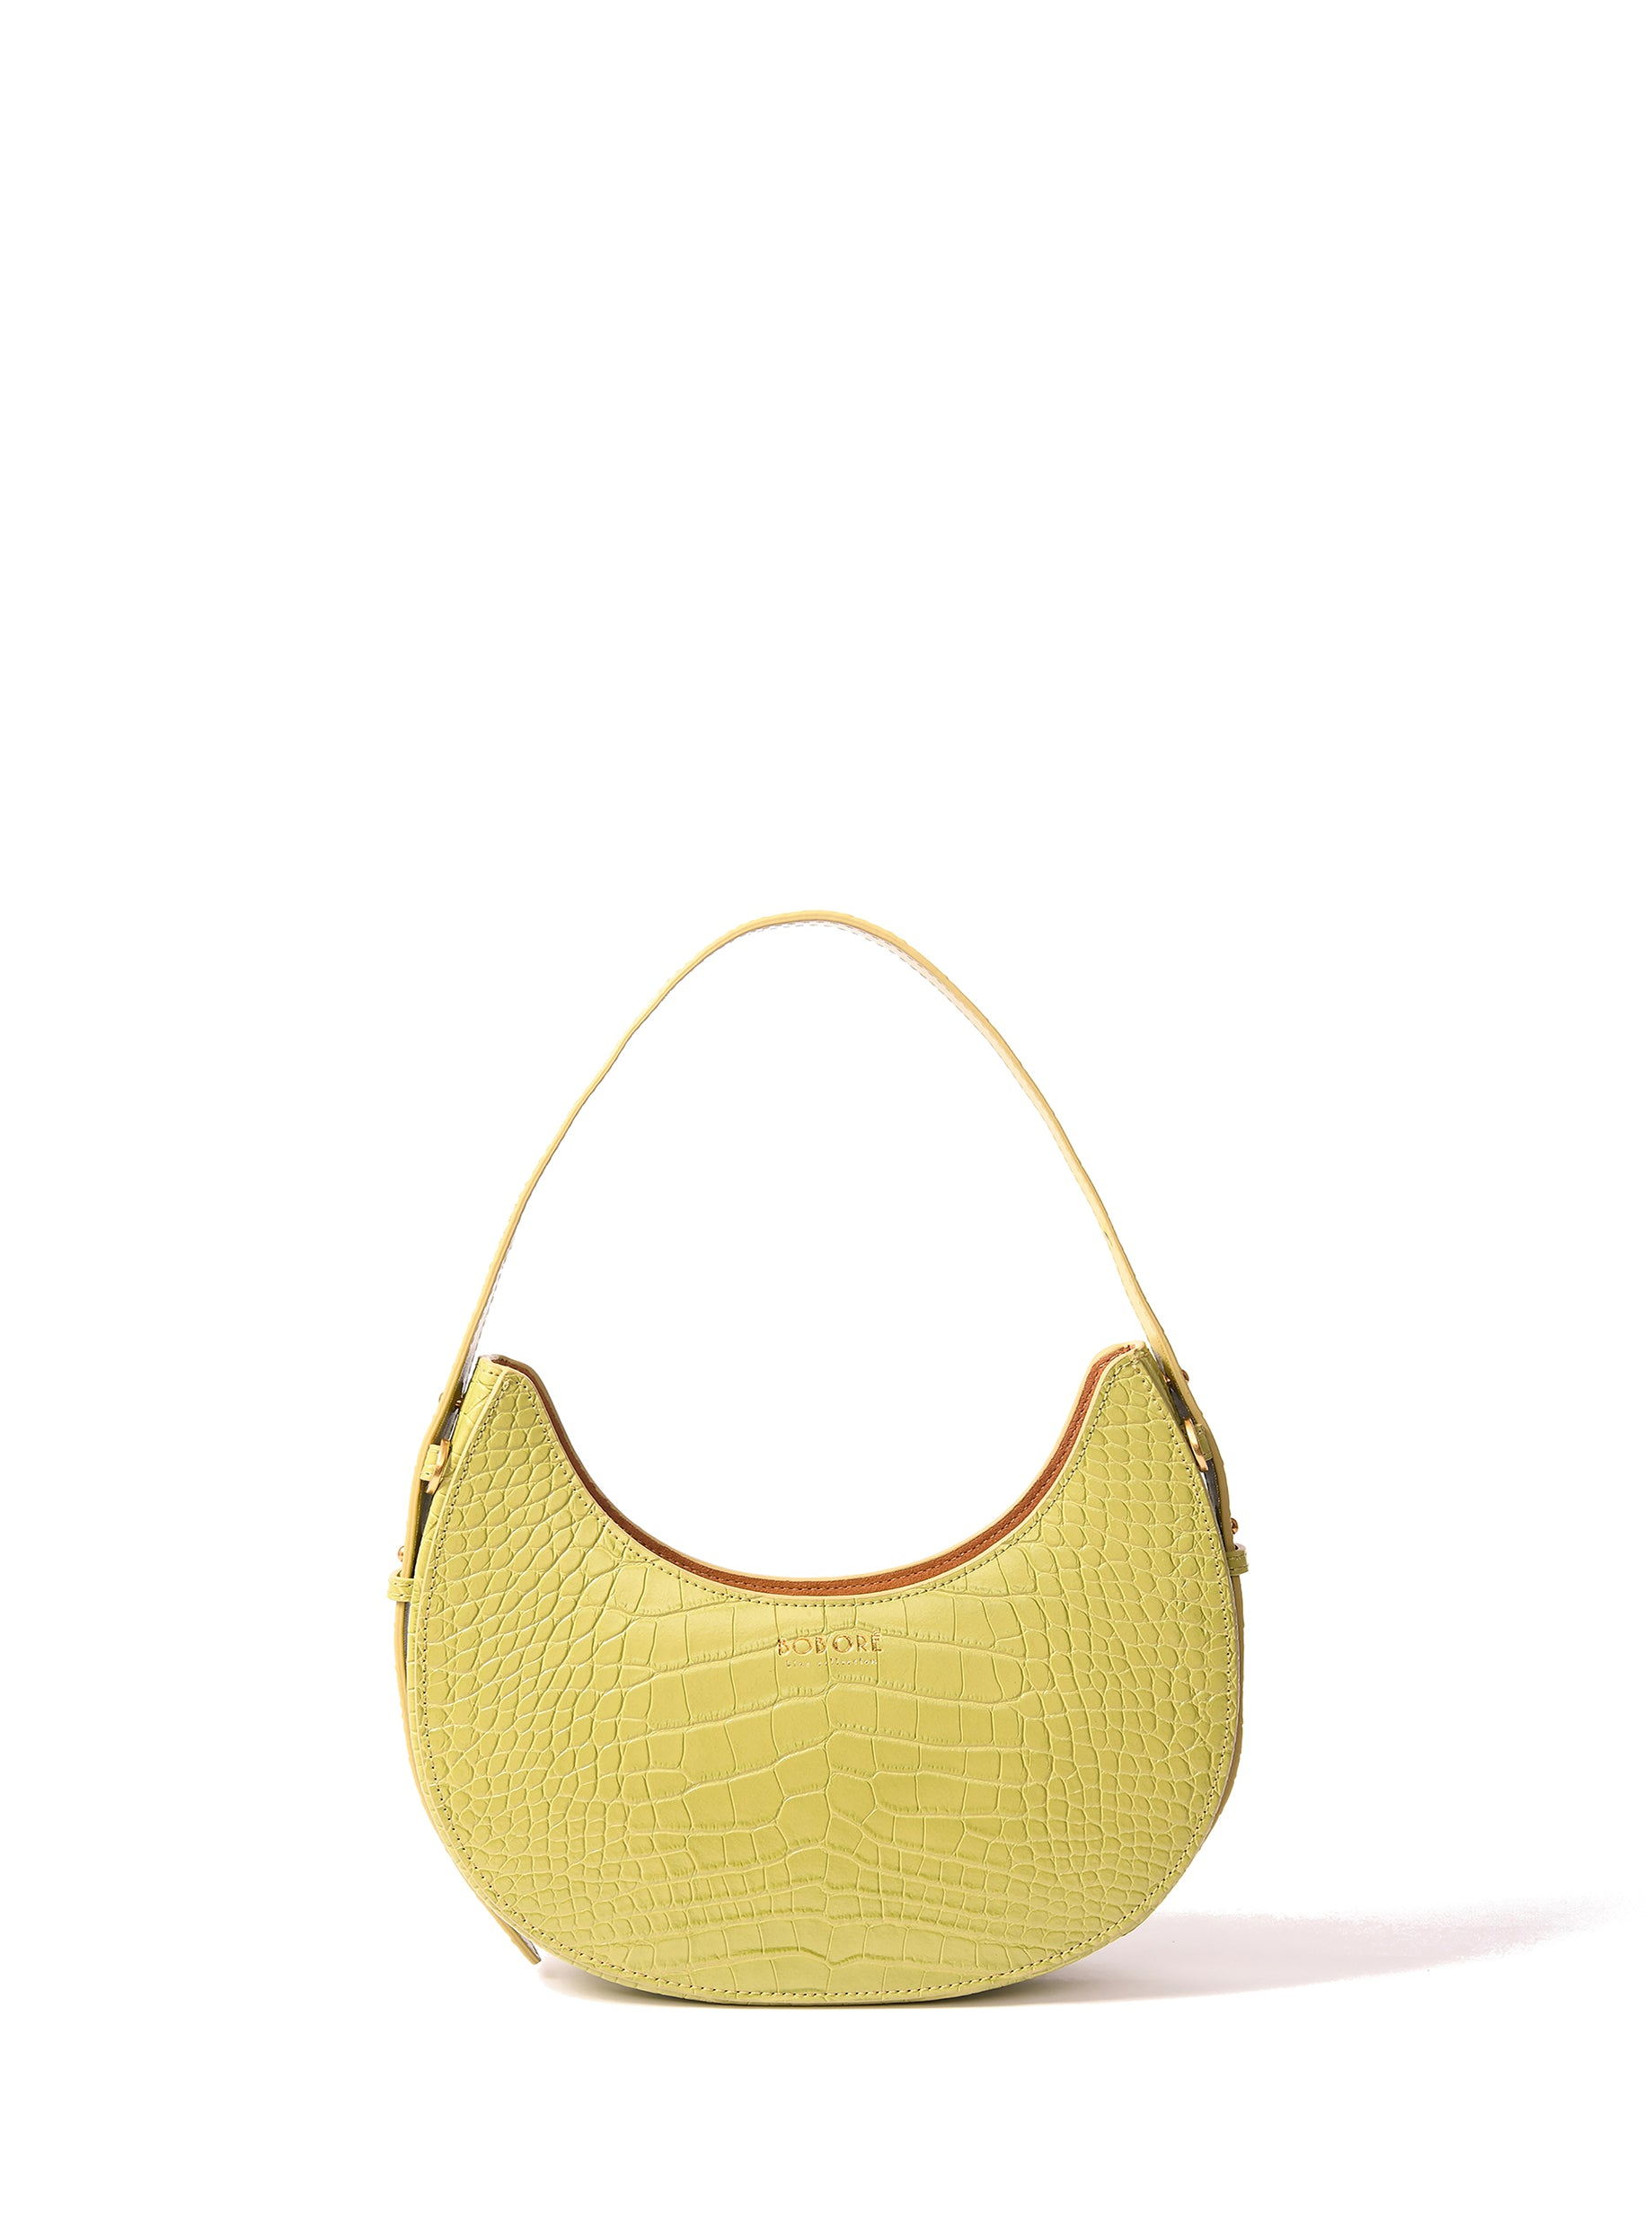 Naomi Bag in croco embossed leather, Green